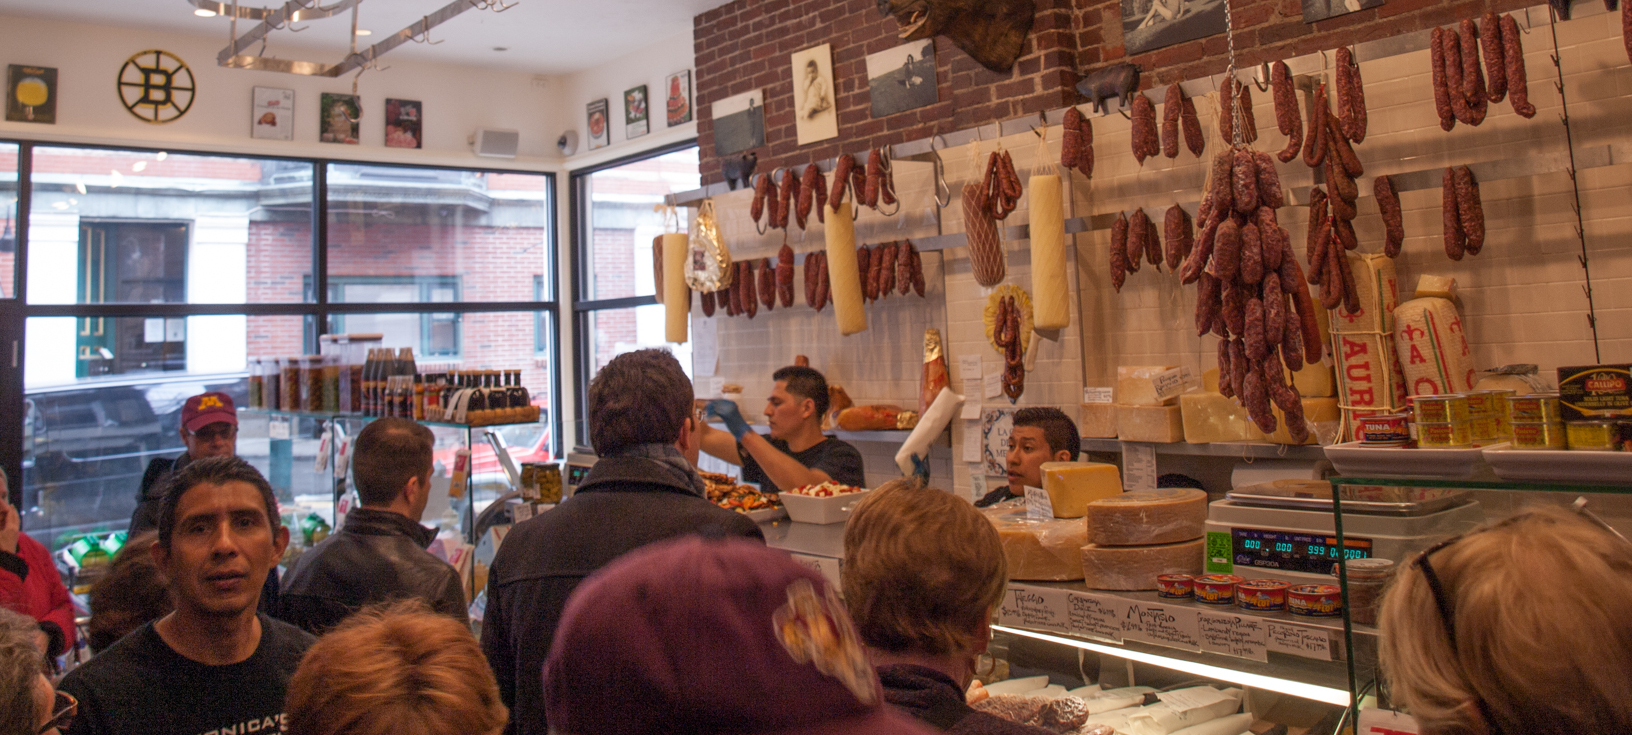 Monica's Mercato & Salumeria in Boston's North End - photo by Glenn D. Kaufmann